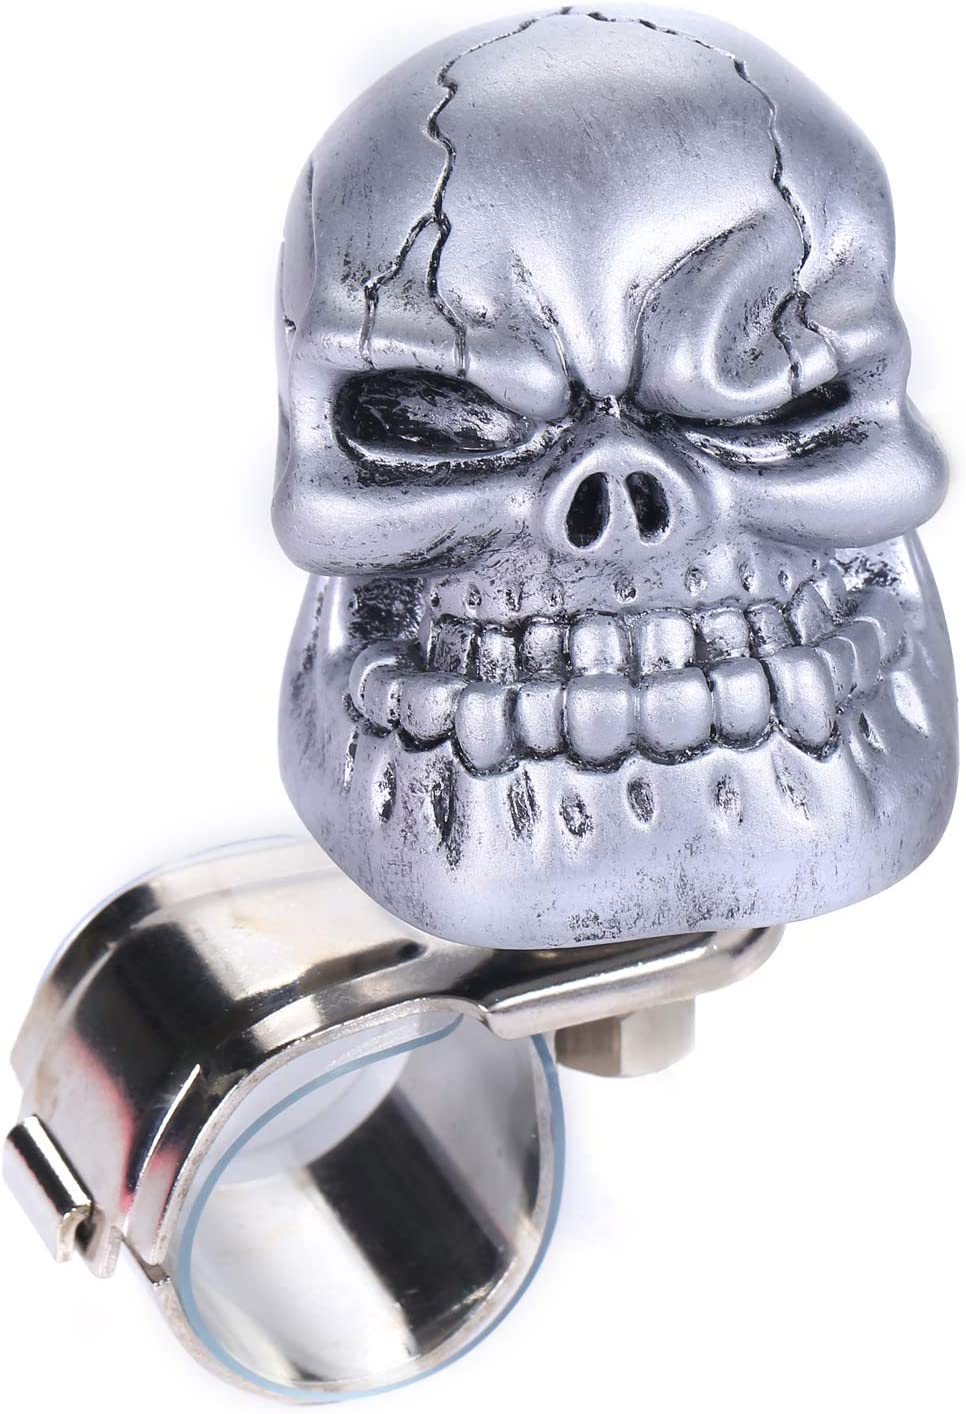 Silver Bashineng Power Suicide Spinner Car Steering Wheel Knob Assist Ball Fit Most Truck SUV Cars